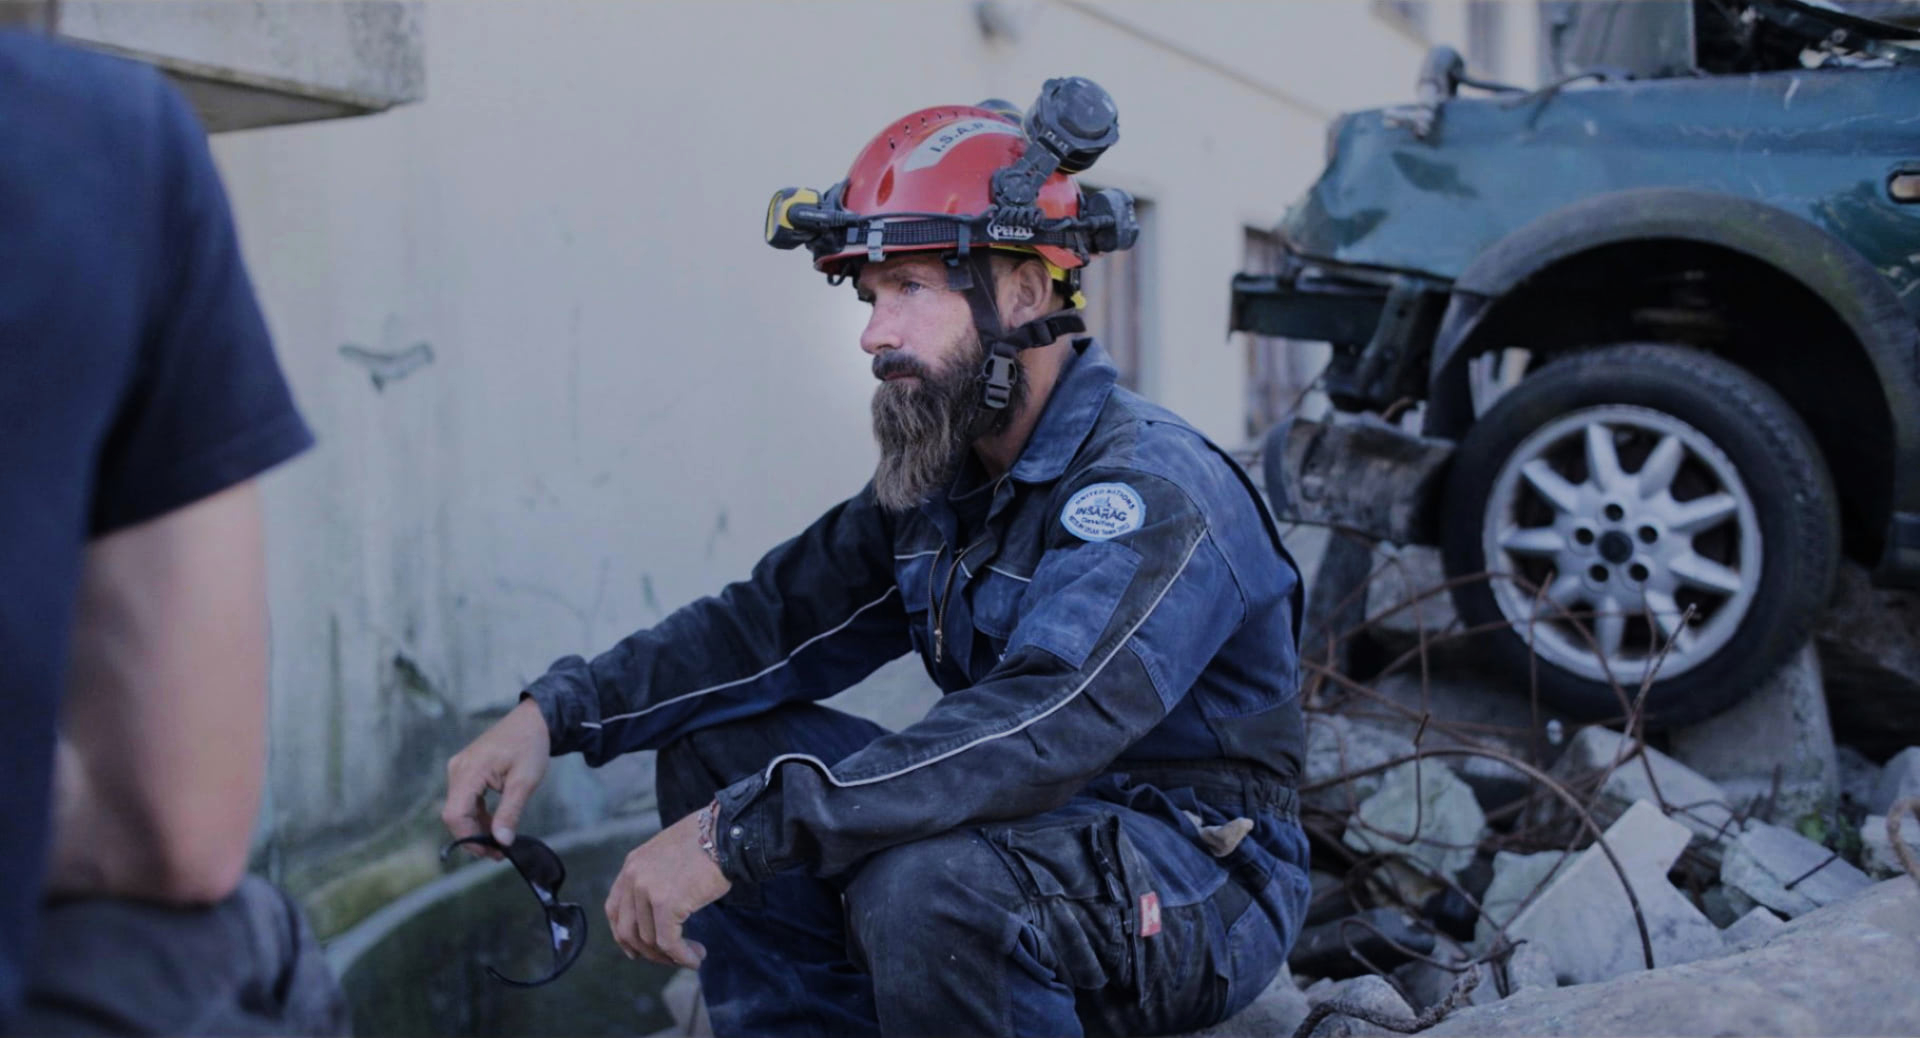 An exhausted man in an overall, wearing his helmet, sitting on some rubble in front of a smashed car.